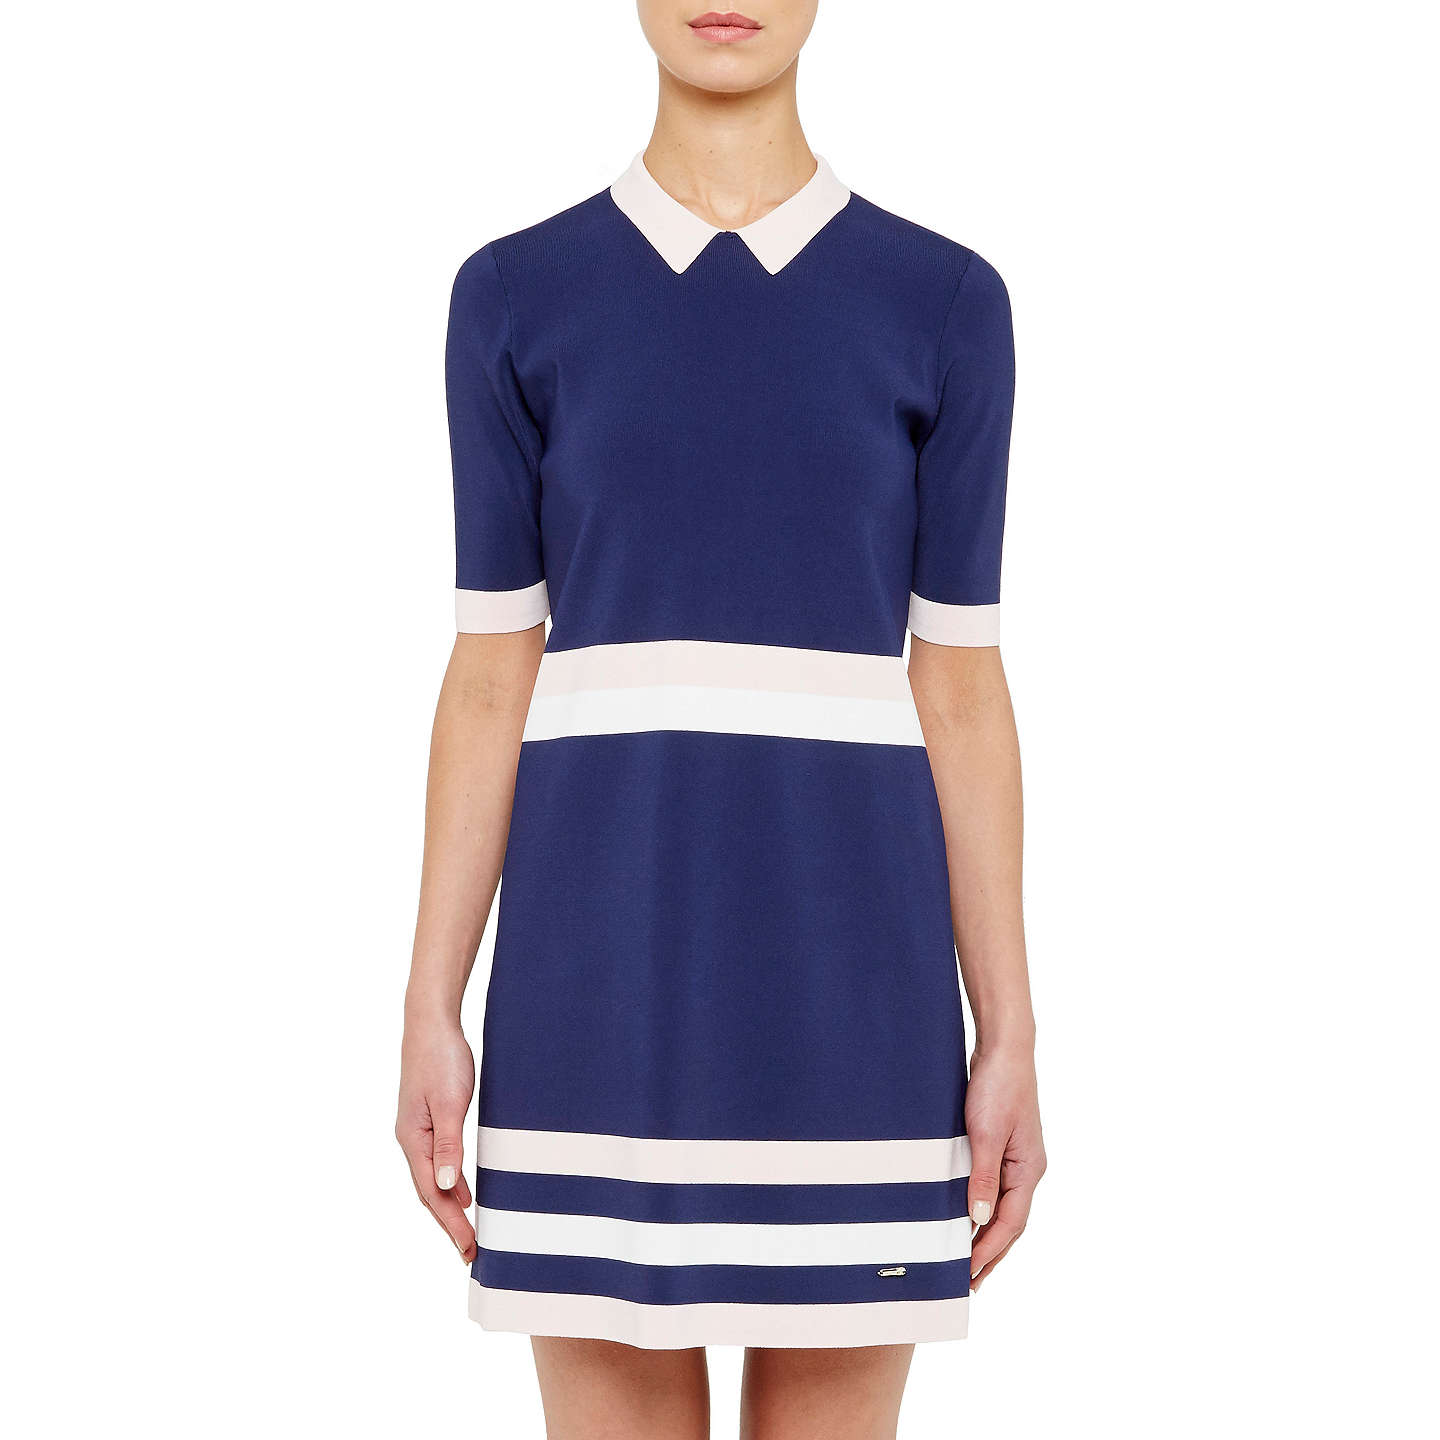 Ted baker colour by numbers origami knitted stripe dress at john lewis buyted baker colour by numbers origami knitted stripe dress navy 0 online at johnlewis jeuxipadfo Gallery